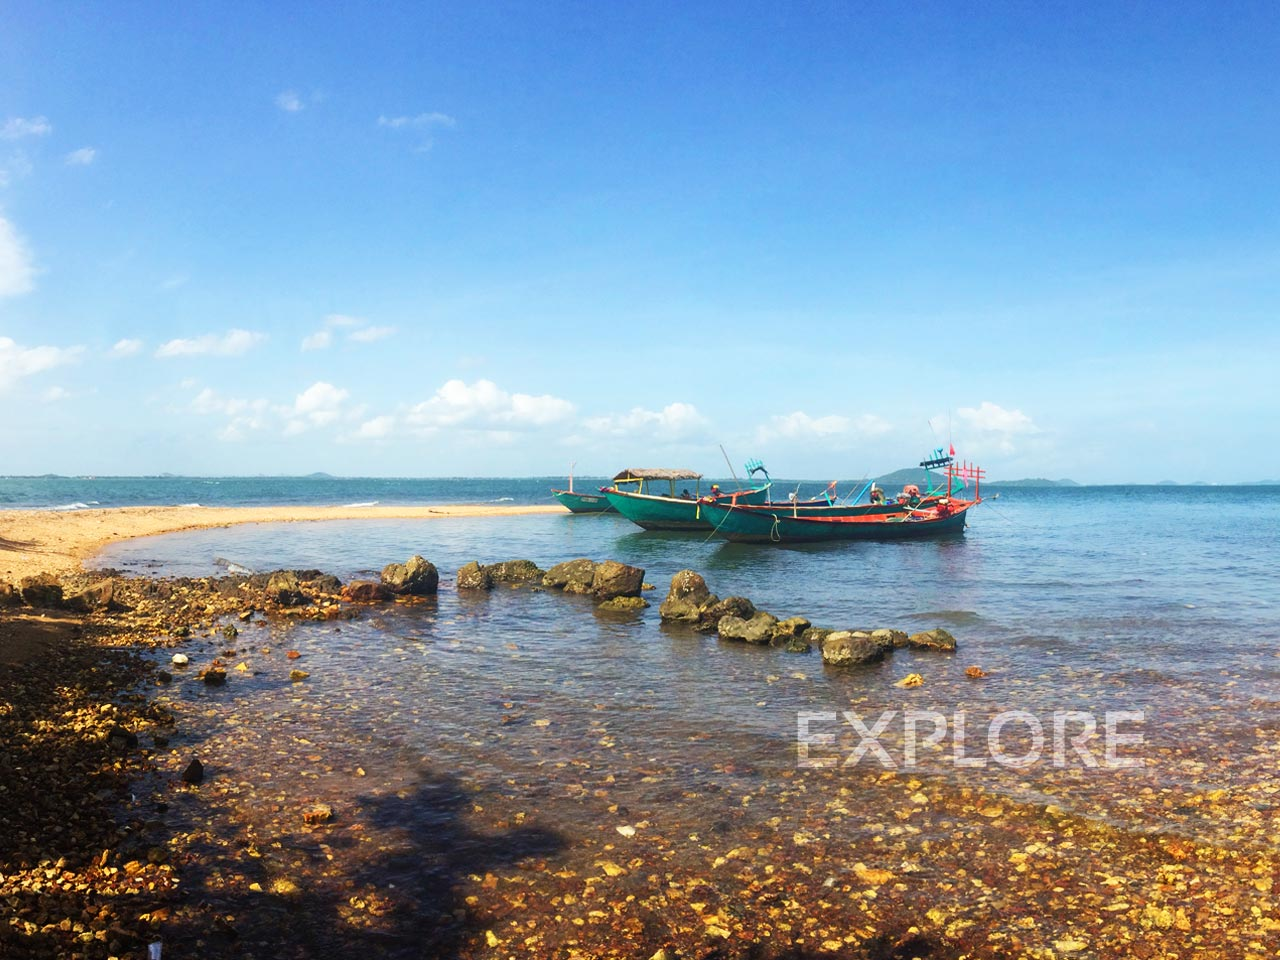 Explore Kep Adventures